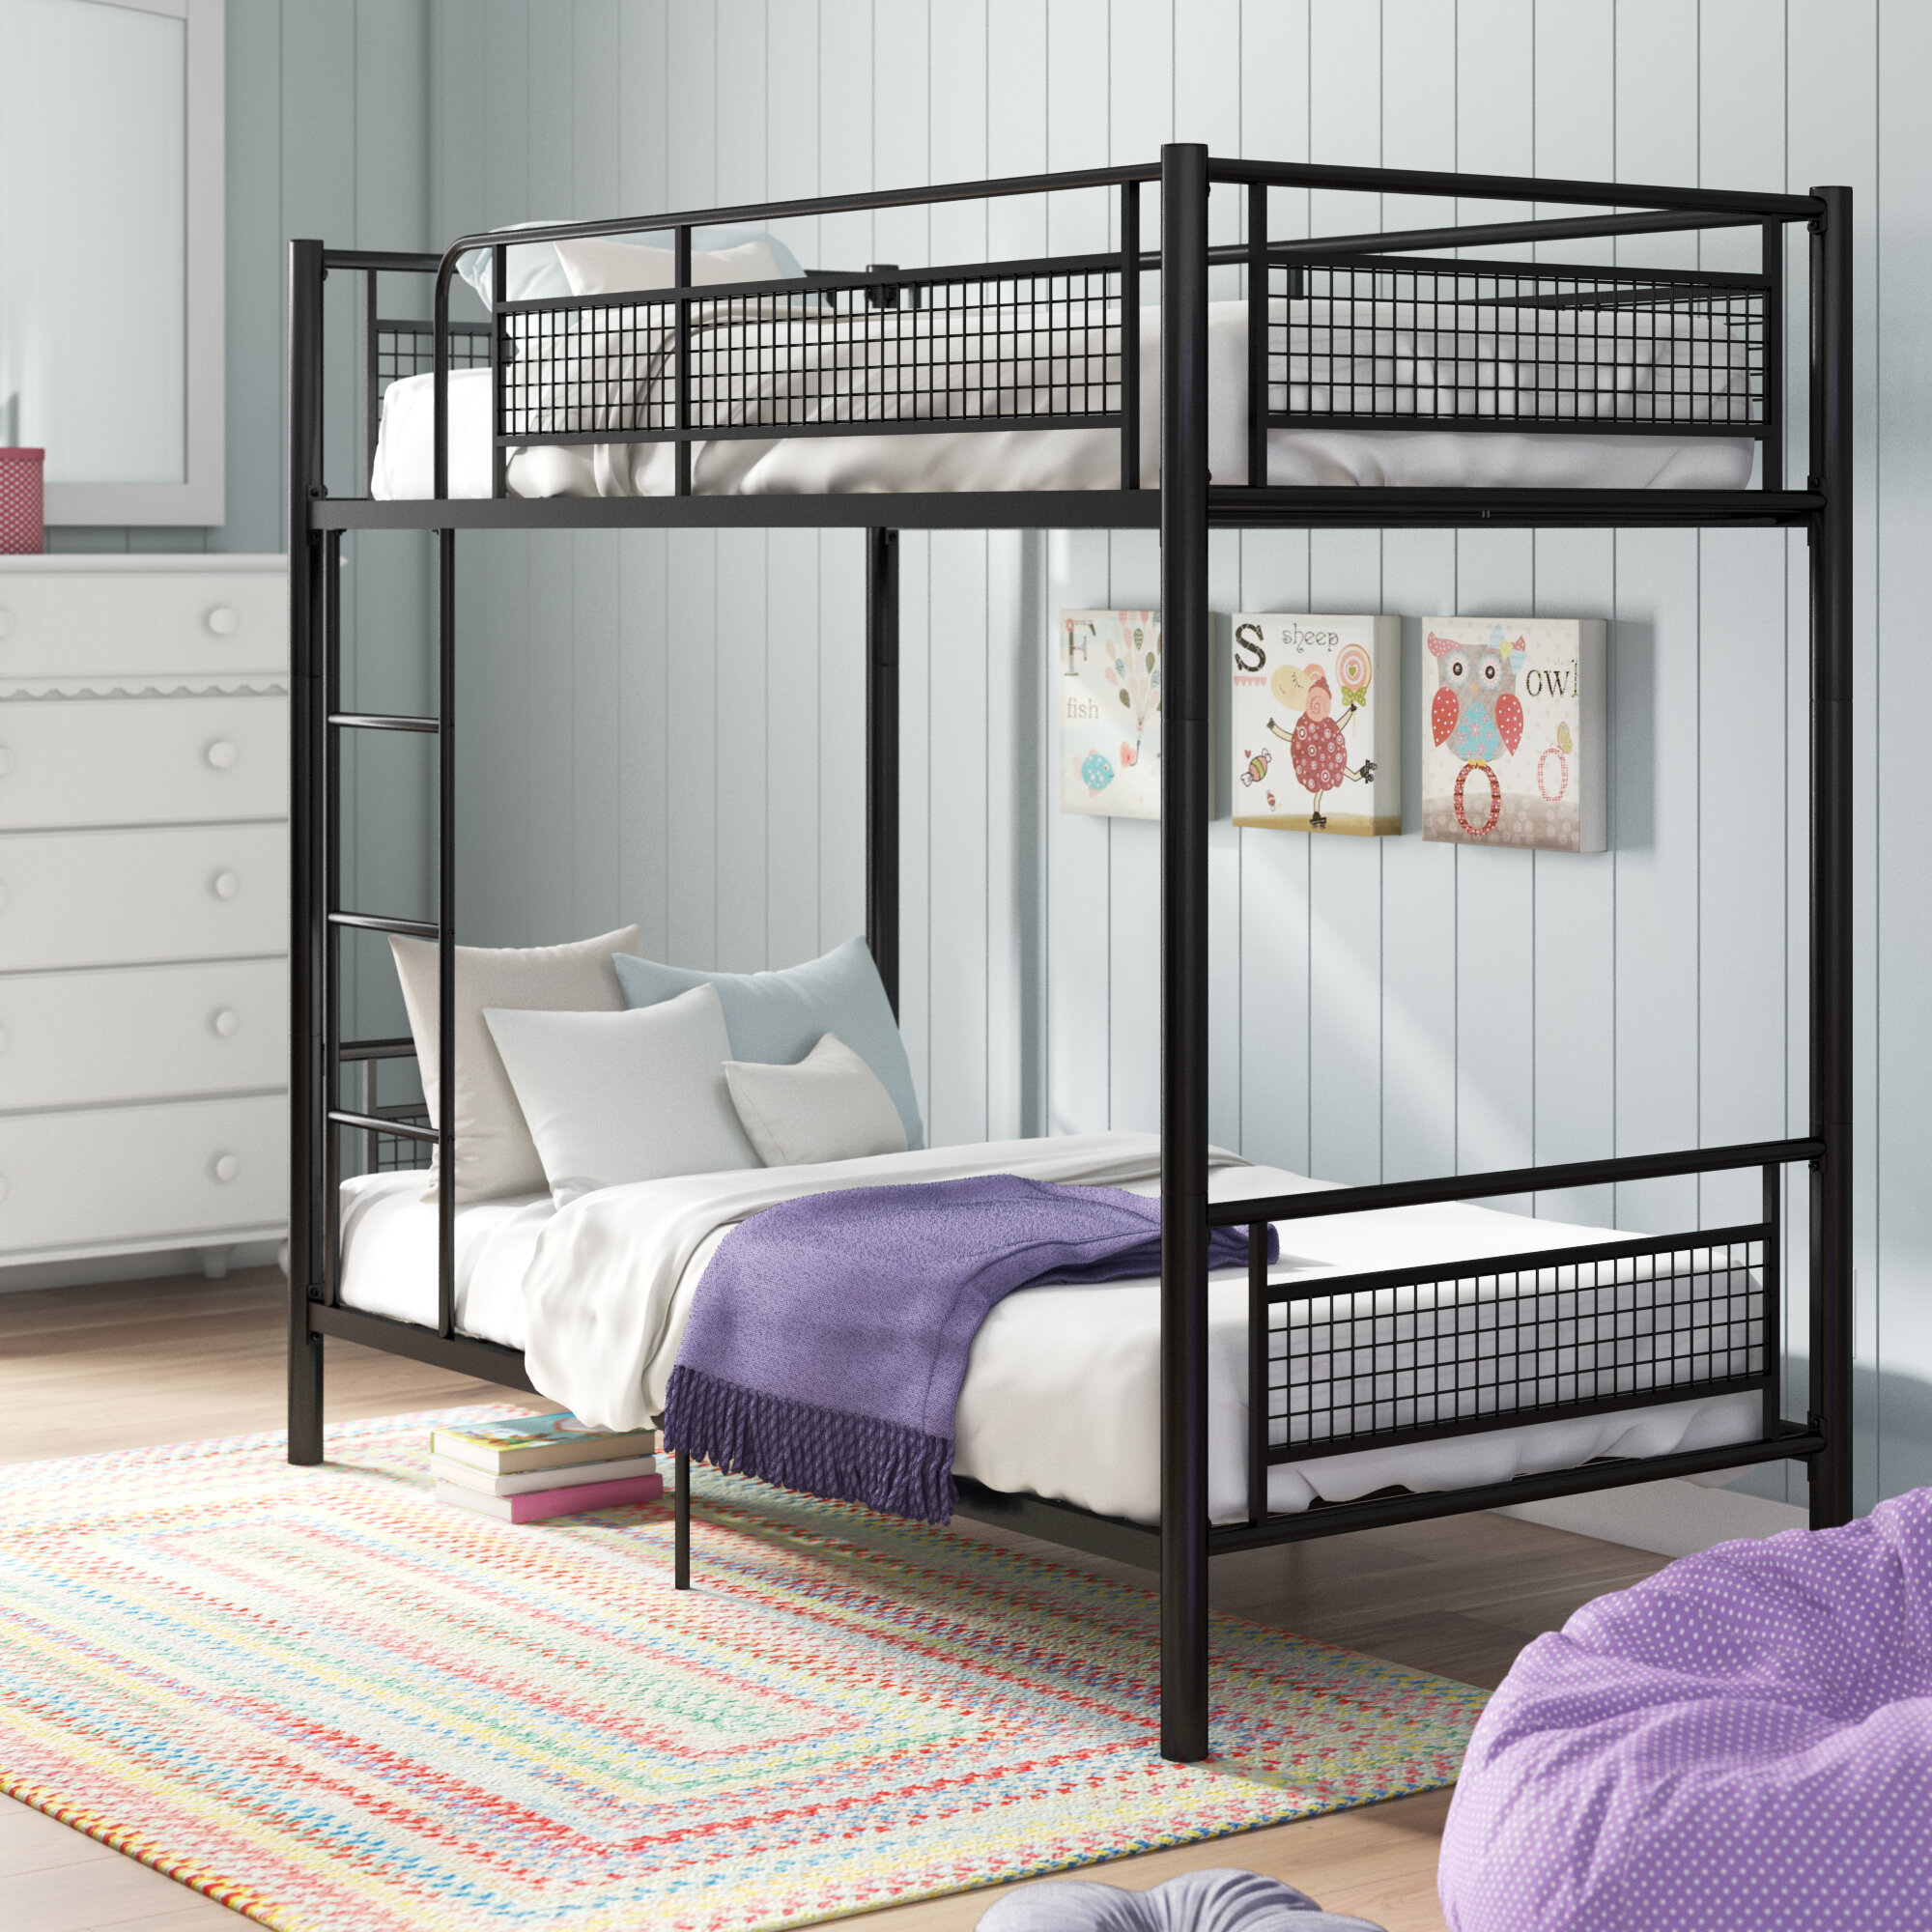 Picture of: Black Metal Bunk Beds You Ll Love In 2020 Wayfair